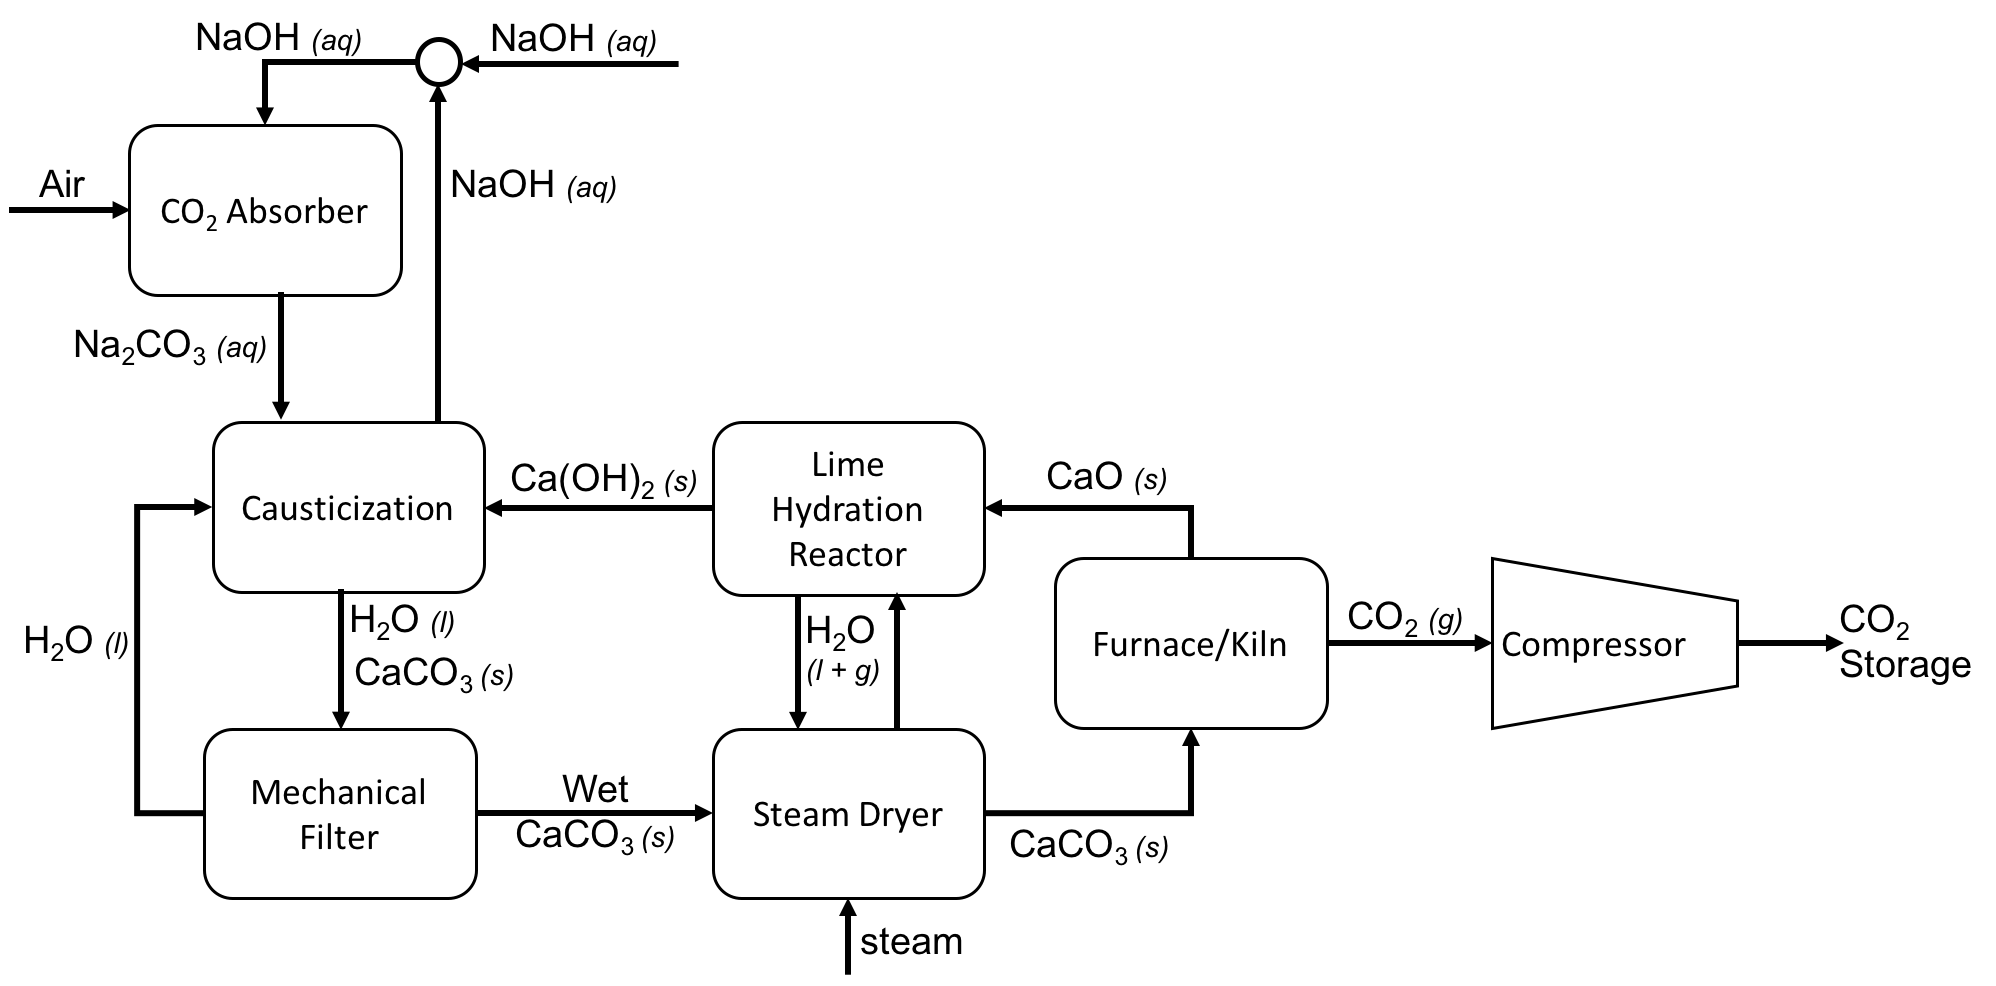 hight resolution of file direct air capture process flow diagram using caustic soda png